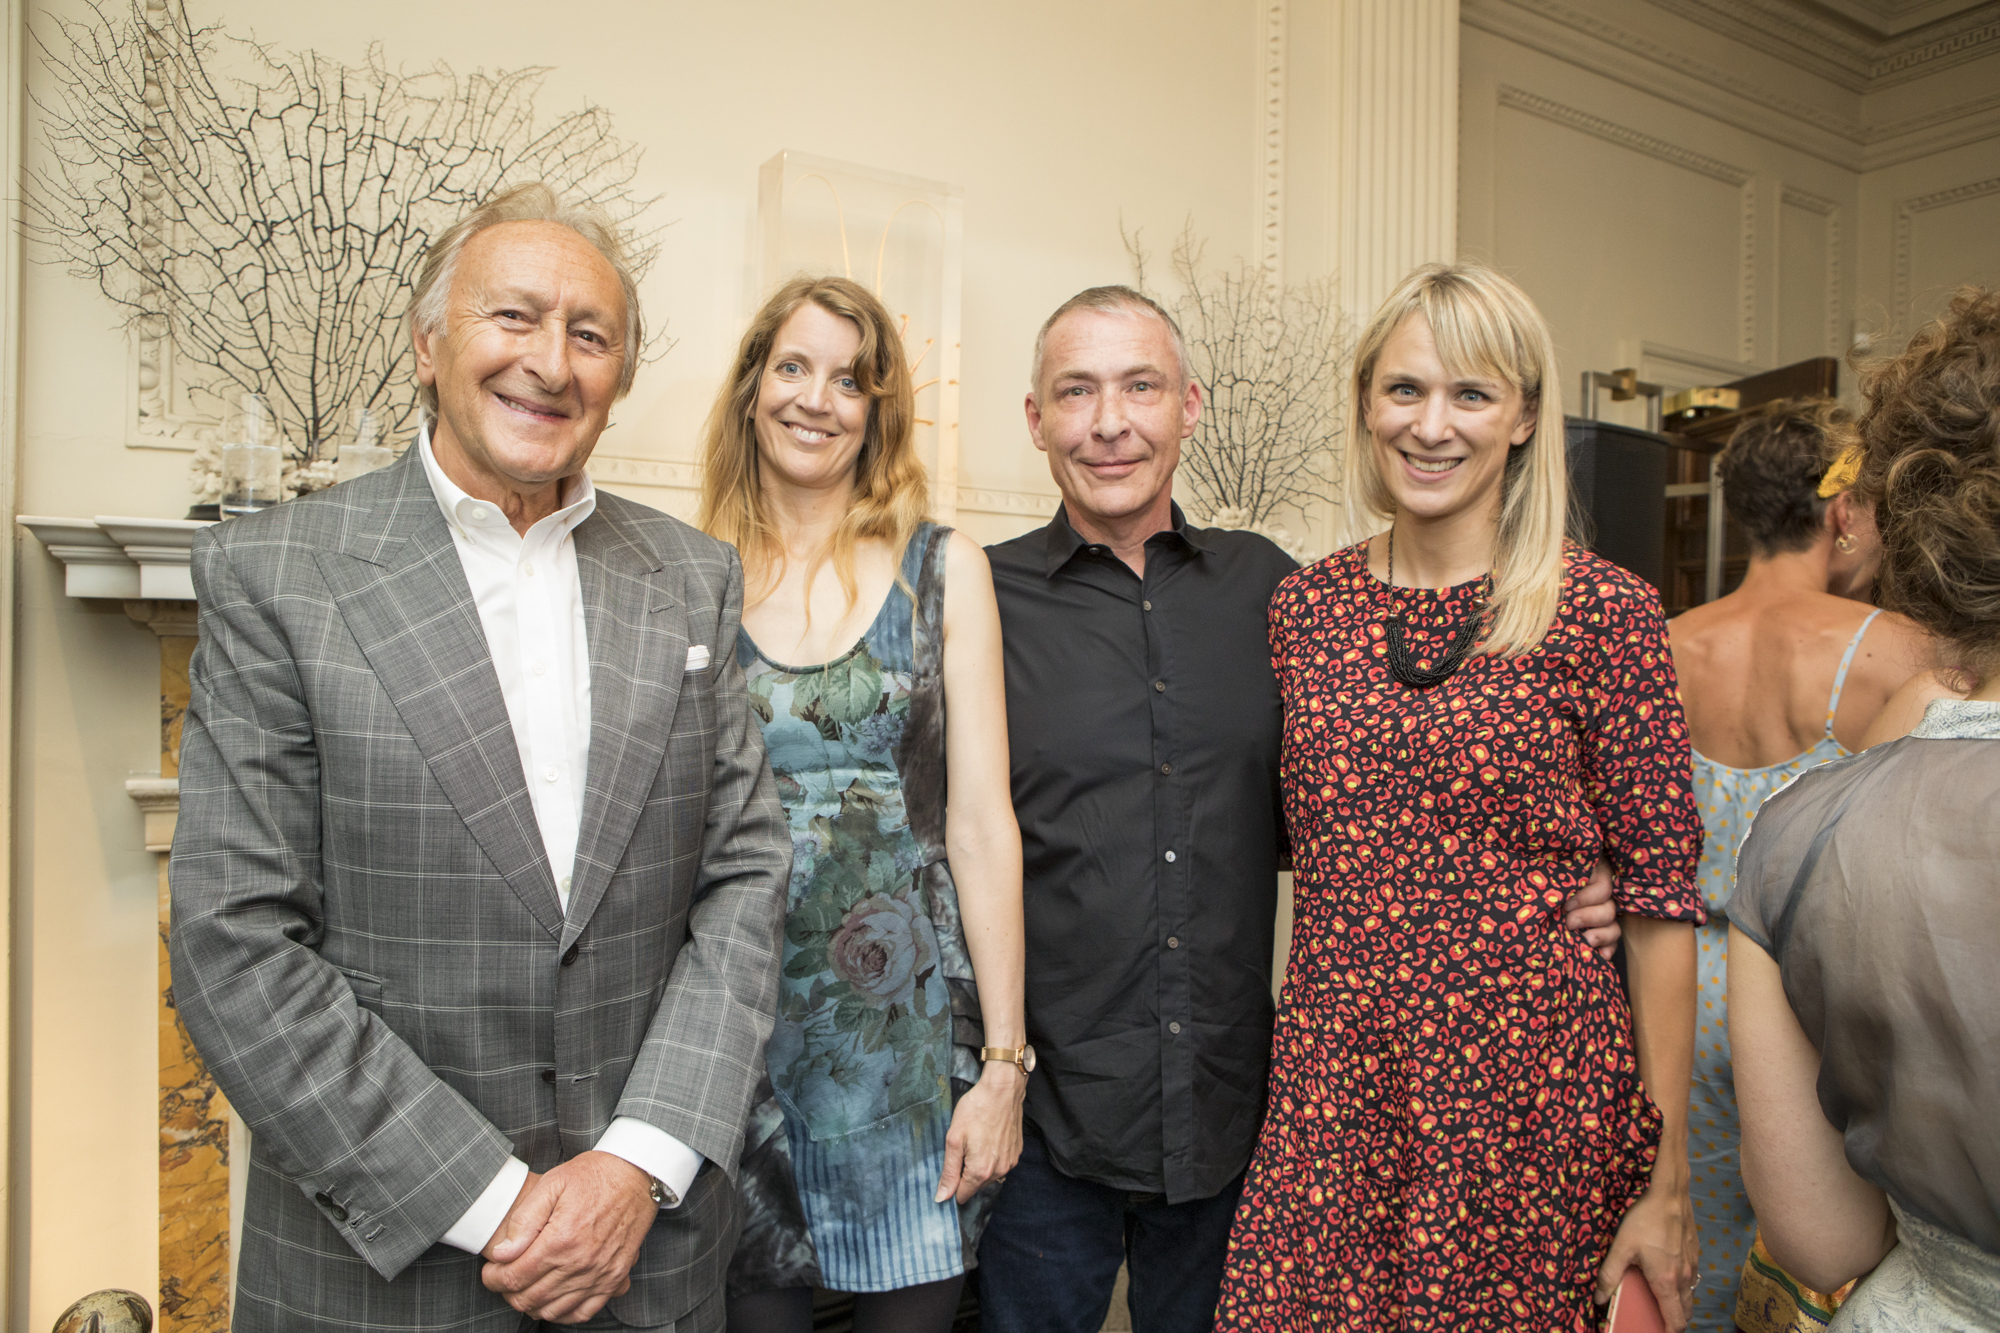 Harold Tillman - Chair, Common Objective; Tamsin Lejeune - CEO, Common Objective; Mark Langthorne - CEO, Roland Mouret; Kirsty McGregor - Deputy Editor, Drapers -